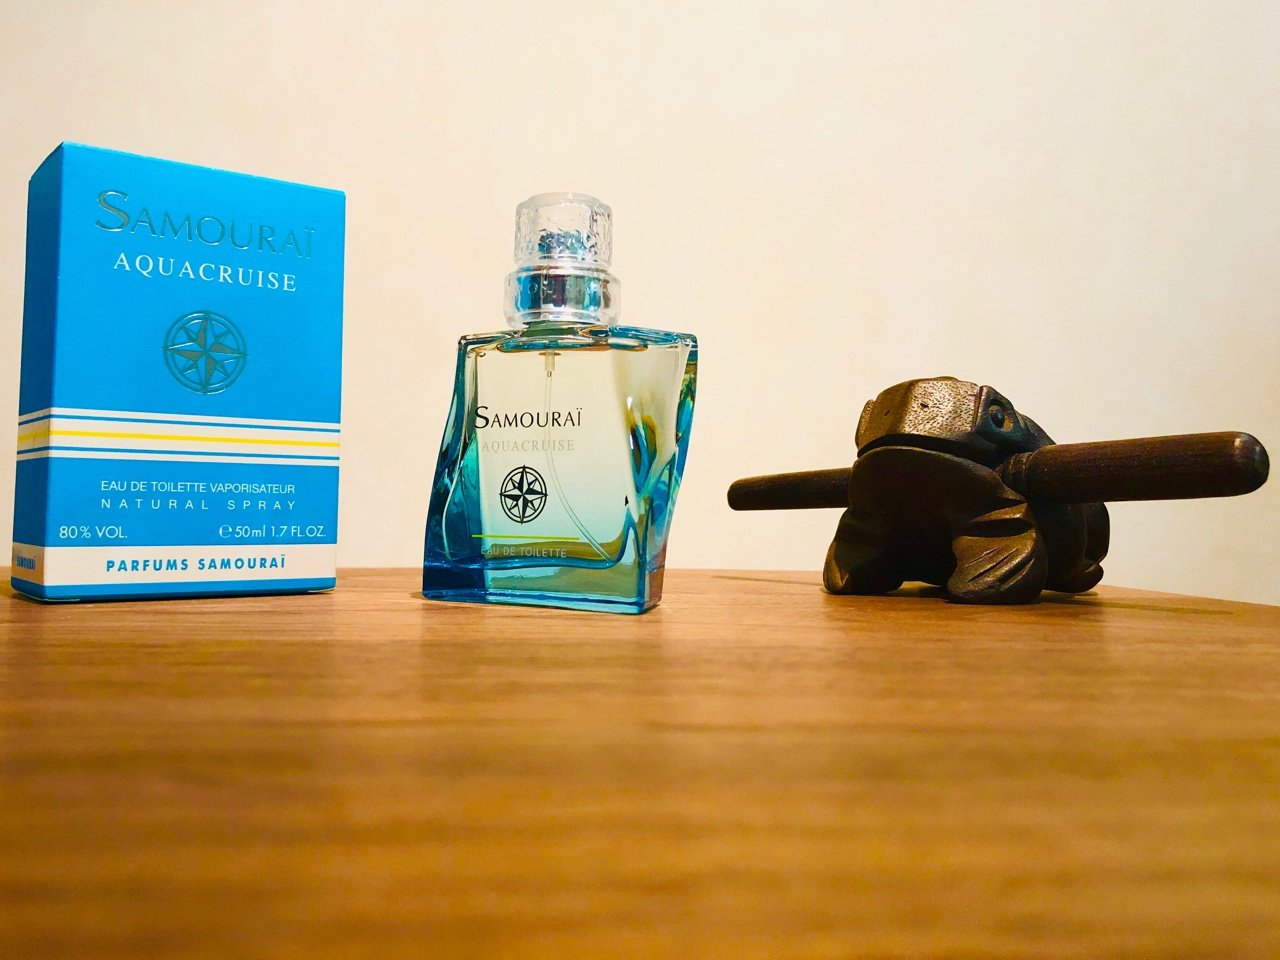 Samourai Aquacruise eau de toilette https://t.co/FKc3Dc6npR